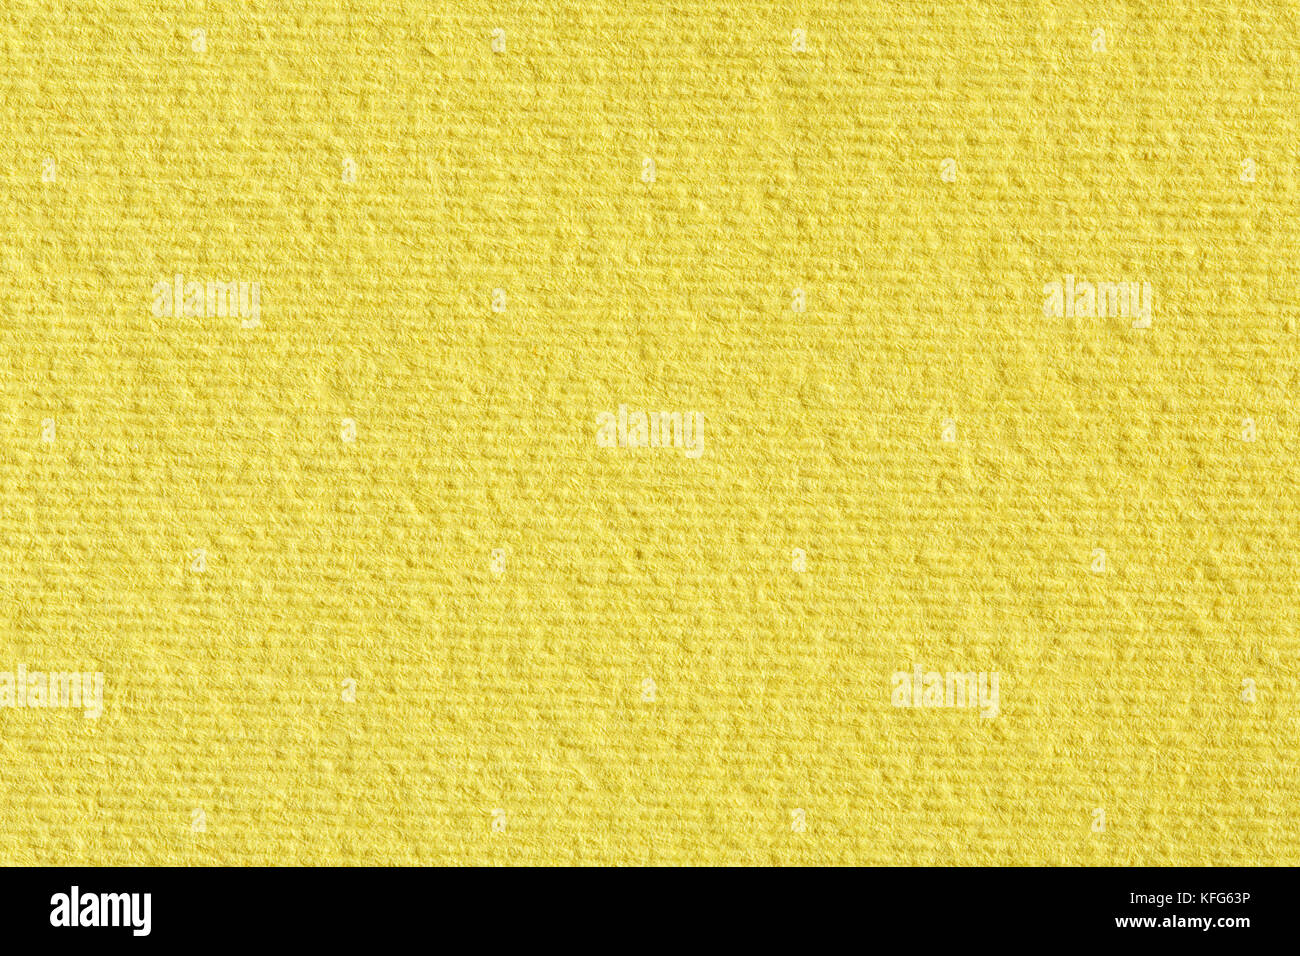 light yellow paper texture. - Stock Image